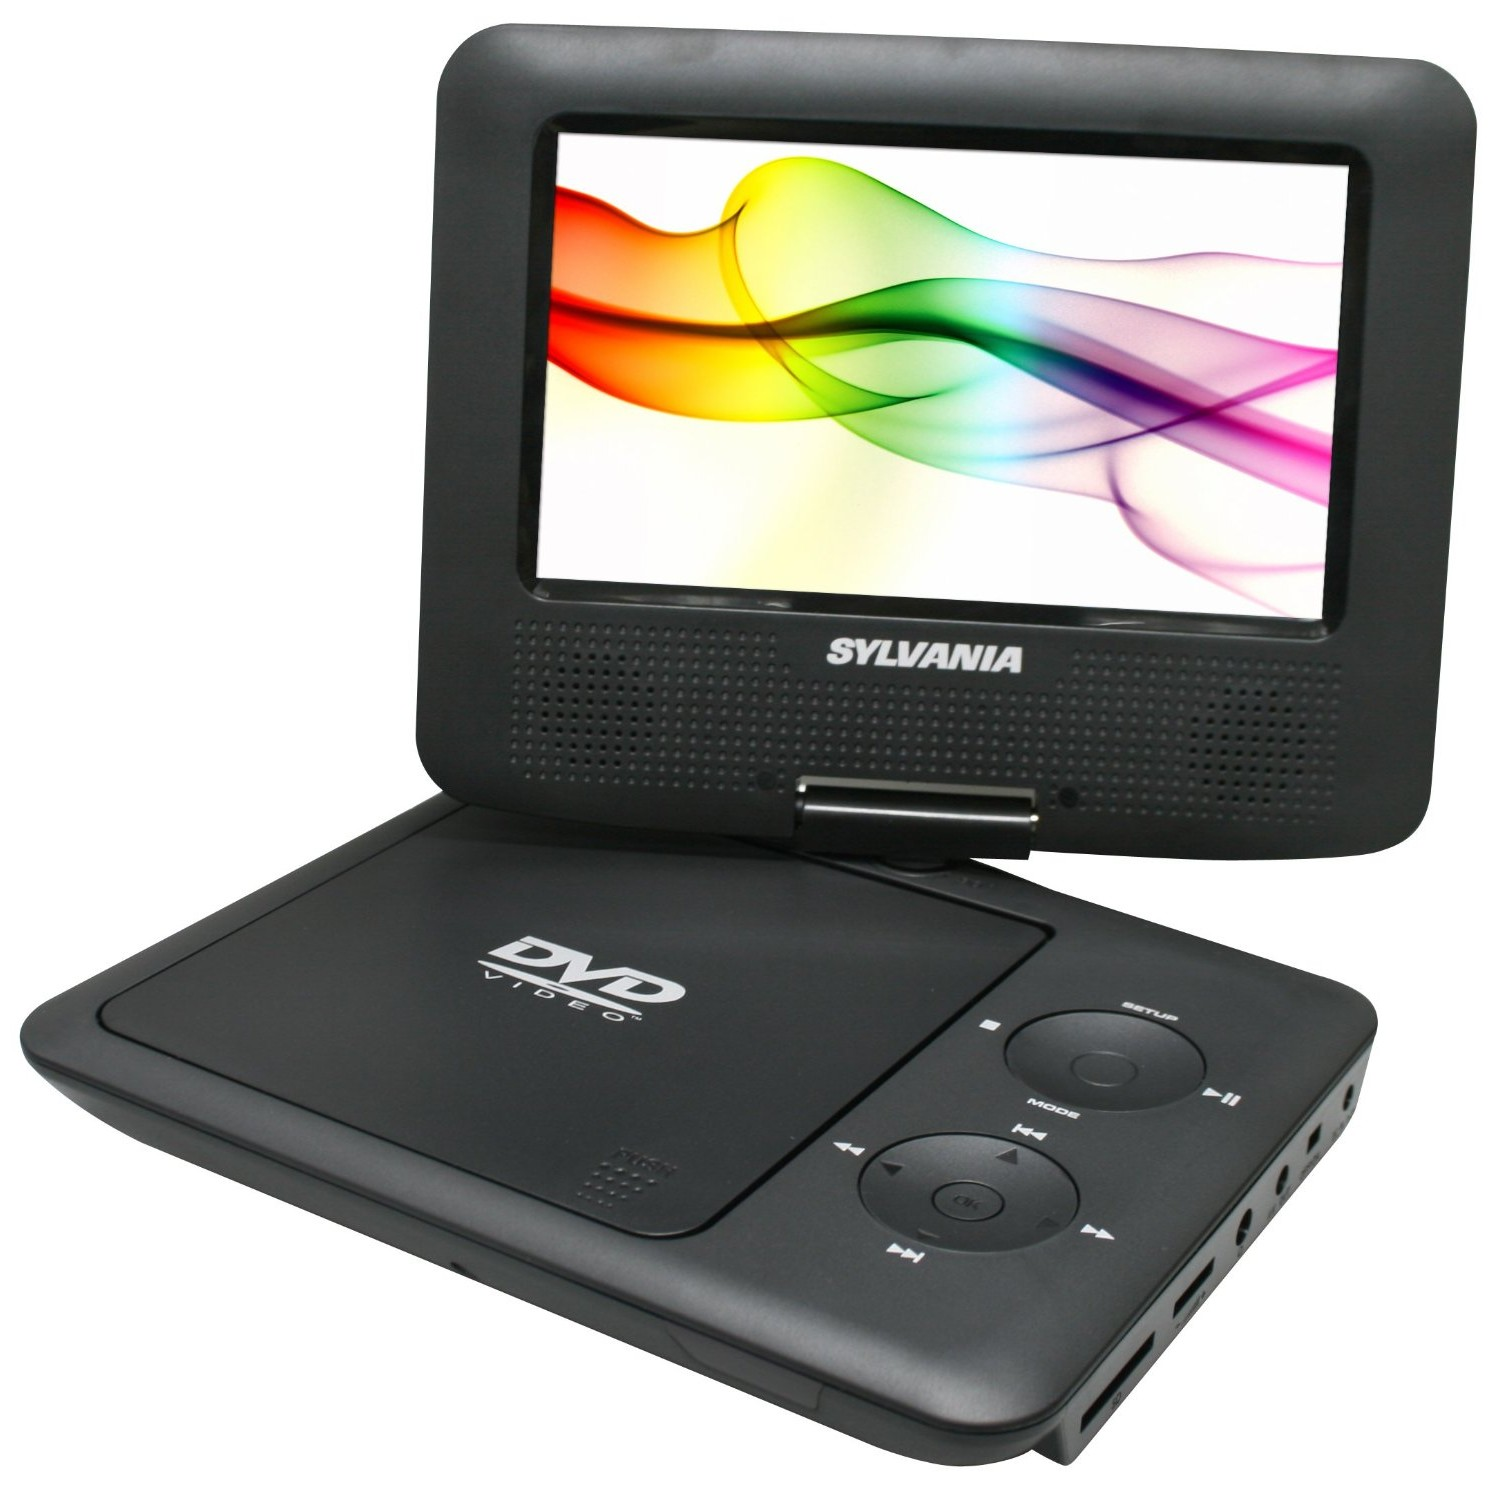 sylvania portable dvd player charger